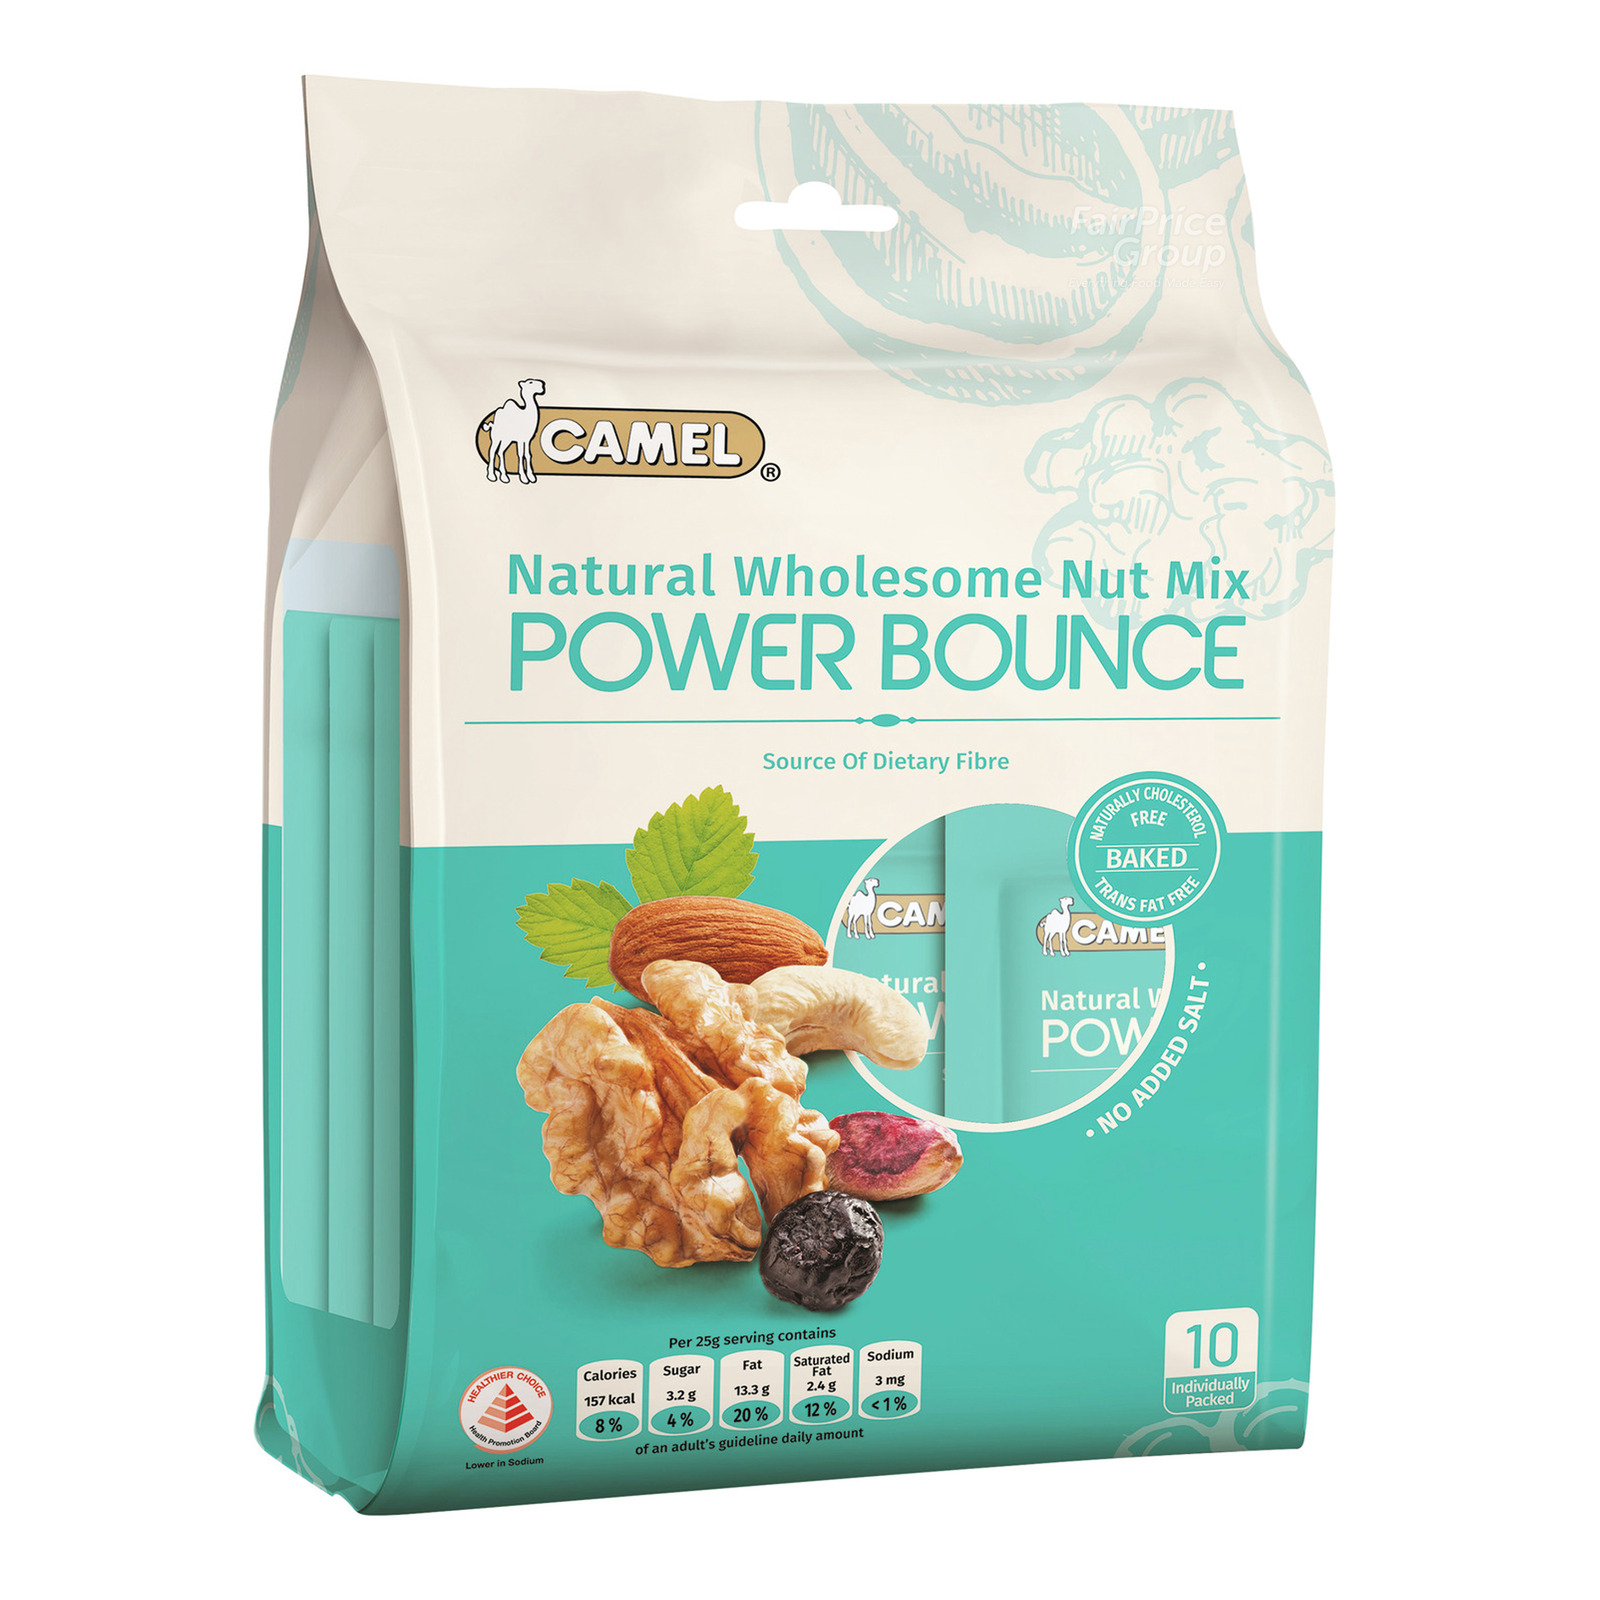 Camel Natural Wholesome Nut Mix - Power Bounce